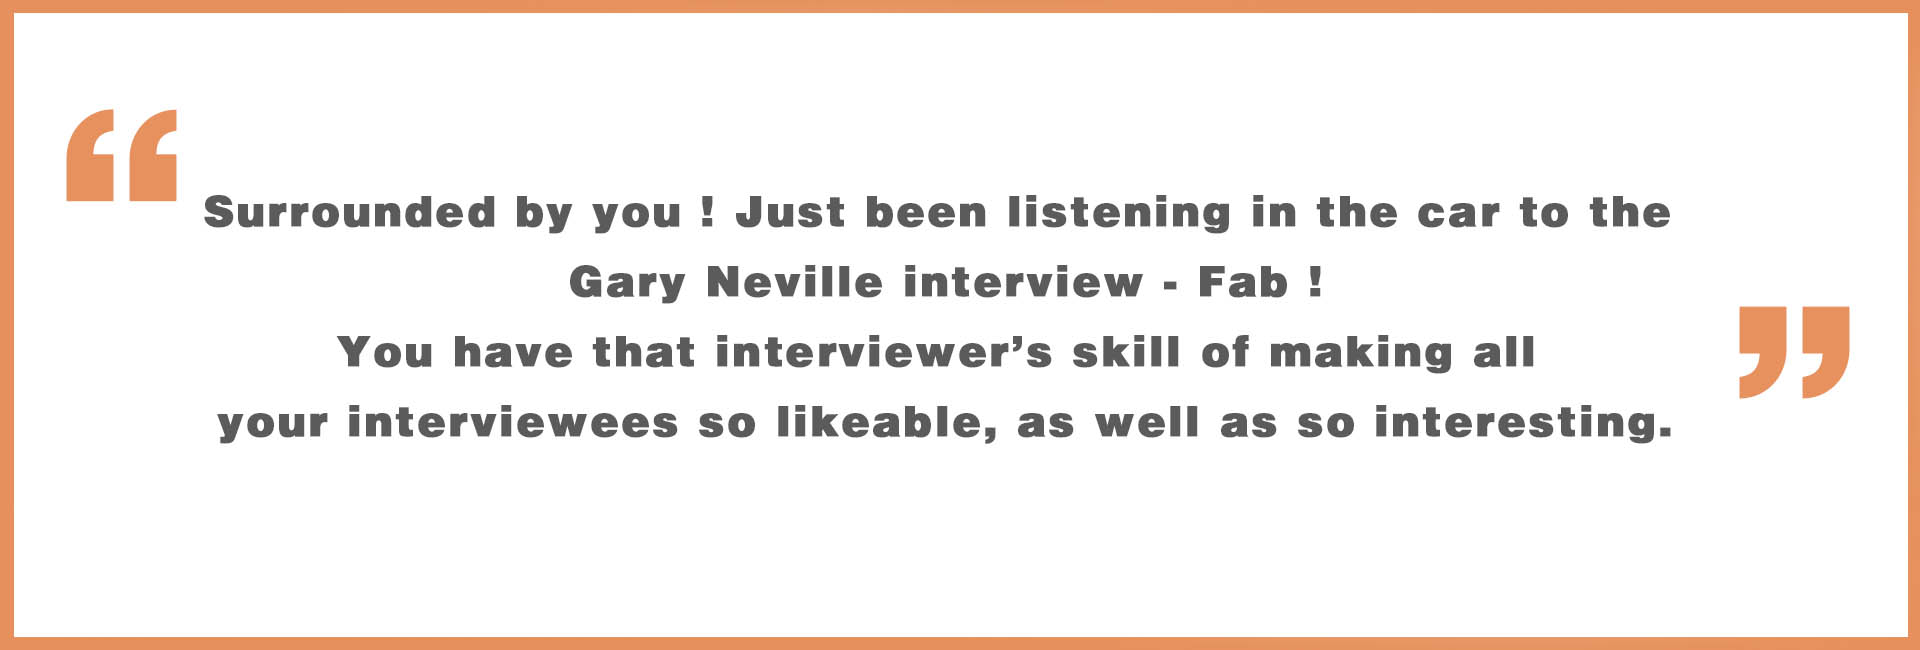 Quote about Gary Neville talking with Liz Taylor Events that Made me